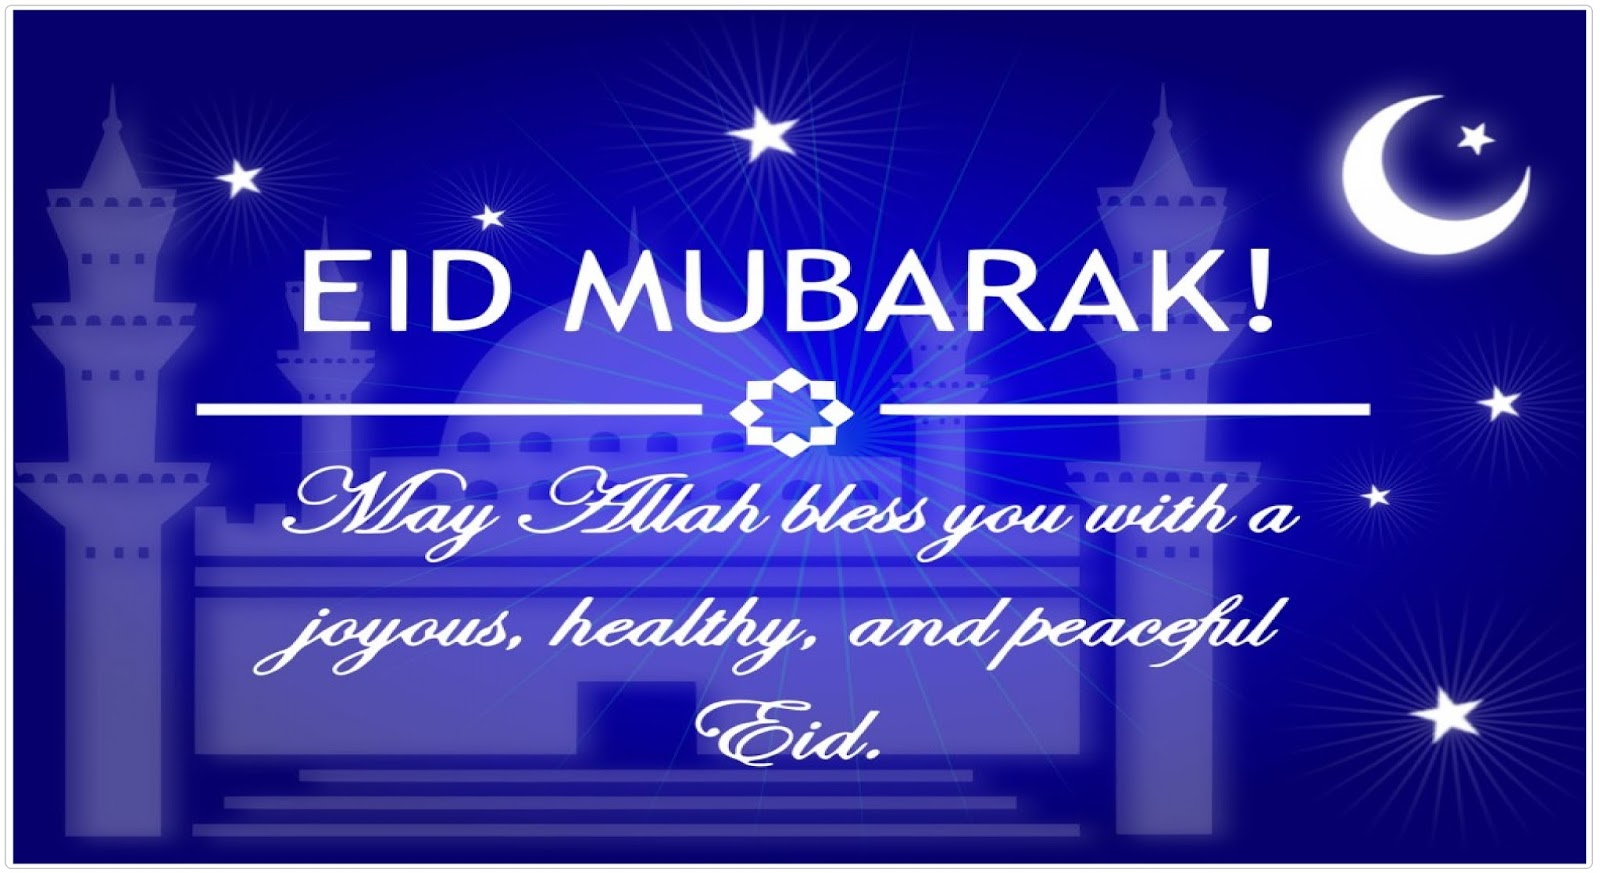 Eid mubarak wishes2018 quotes messages sms greetings status images of eid mubarak greetings kristyandbryce Image collections